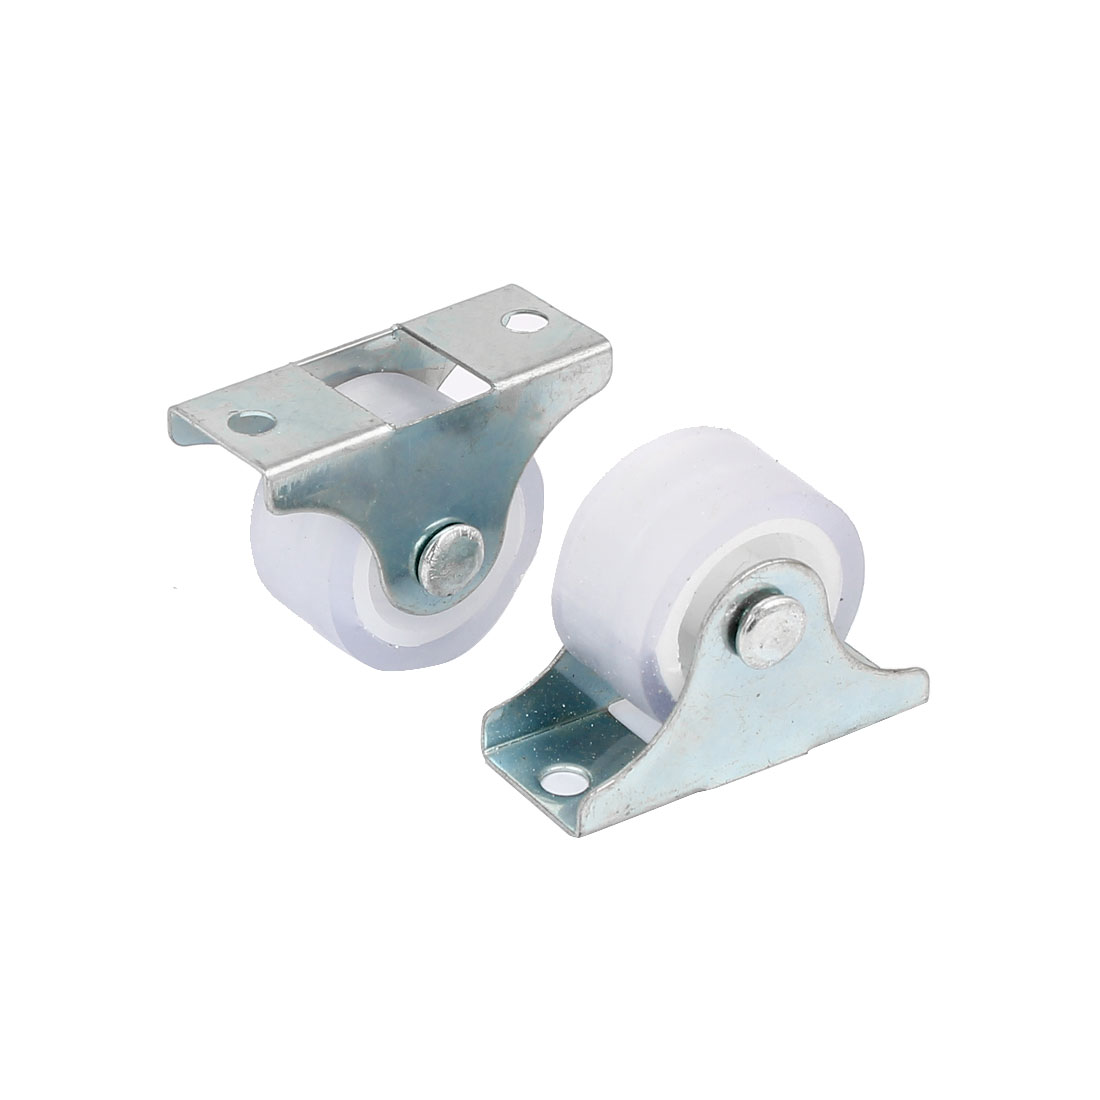 UXCELL Furniture Chair Metal Top Plate Fixed Caster Wheels Silver Tone 1 Dia 2 Pcs 1 silent plastic fixed castor wheels diy silicone caster 10pcs